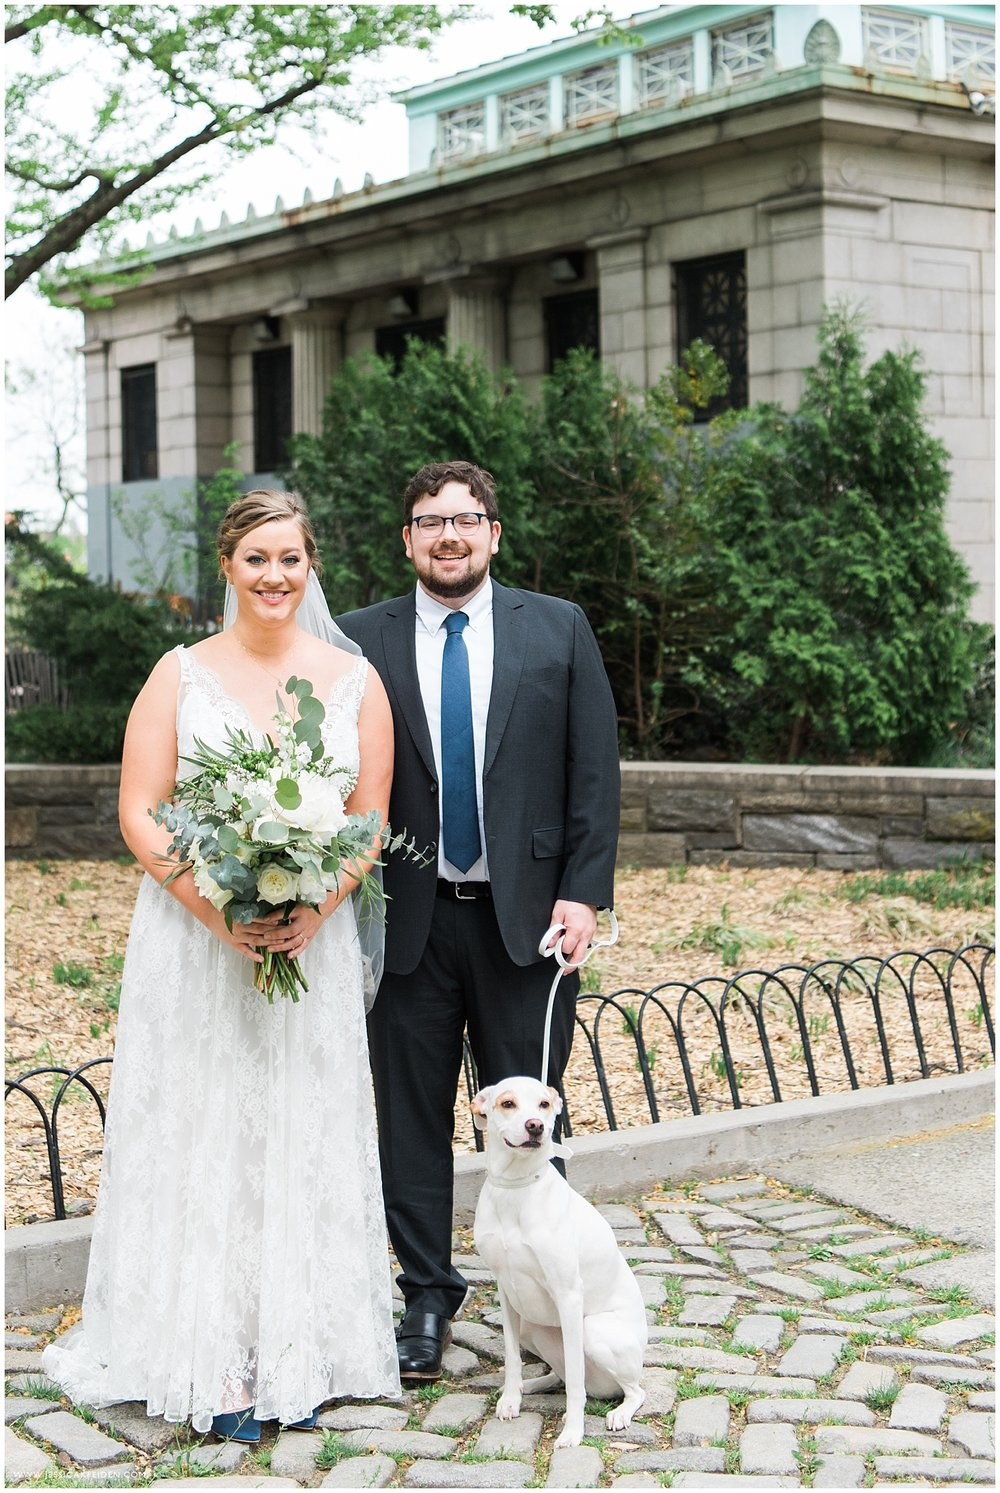 Jessica K Feiden Photography_Margaux+Tim's Irondale Center Brooklyn Wedding_0017.jpg